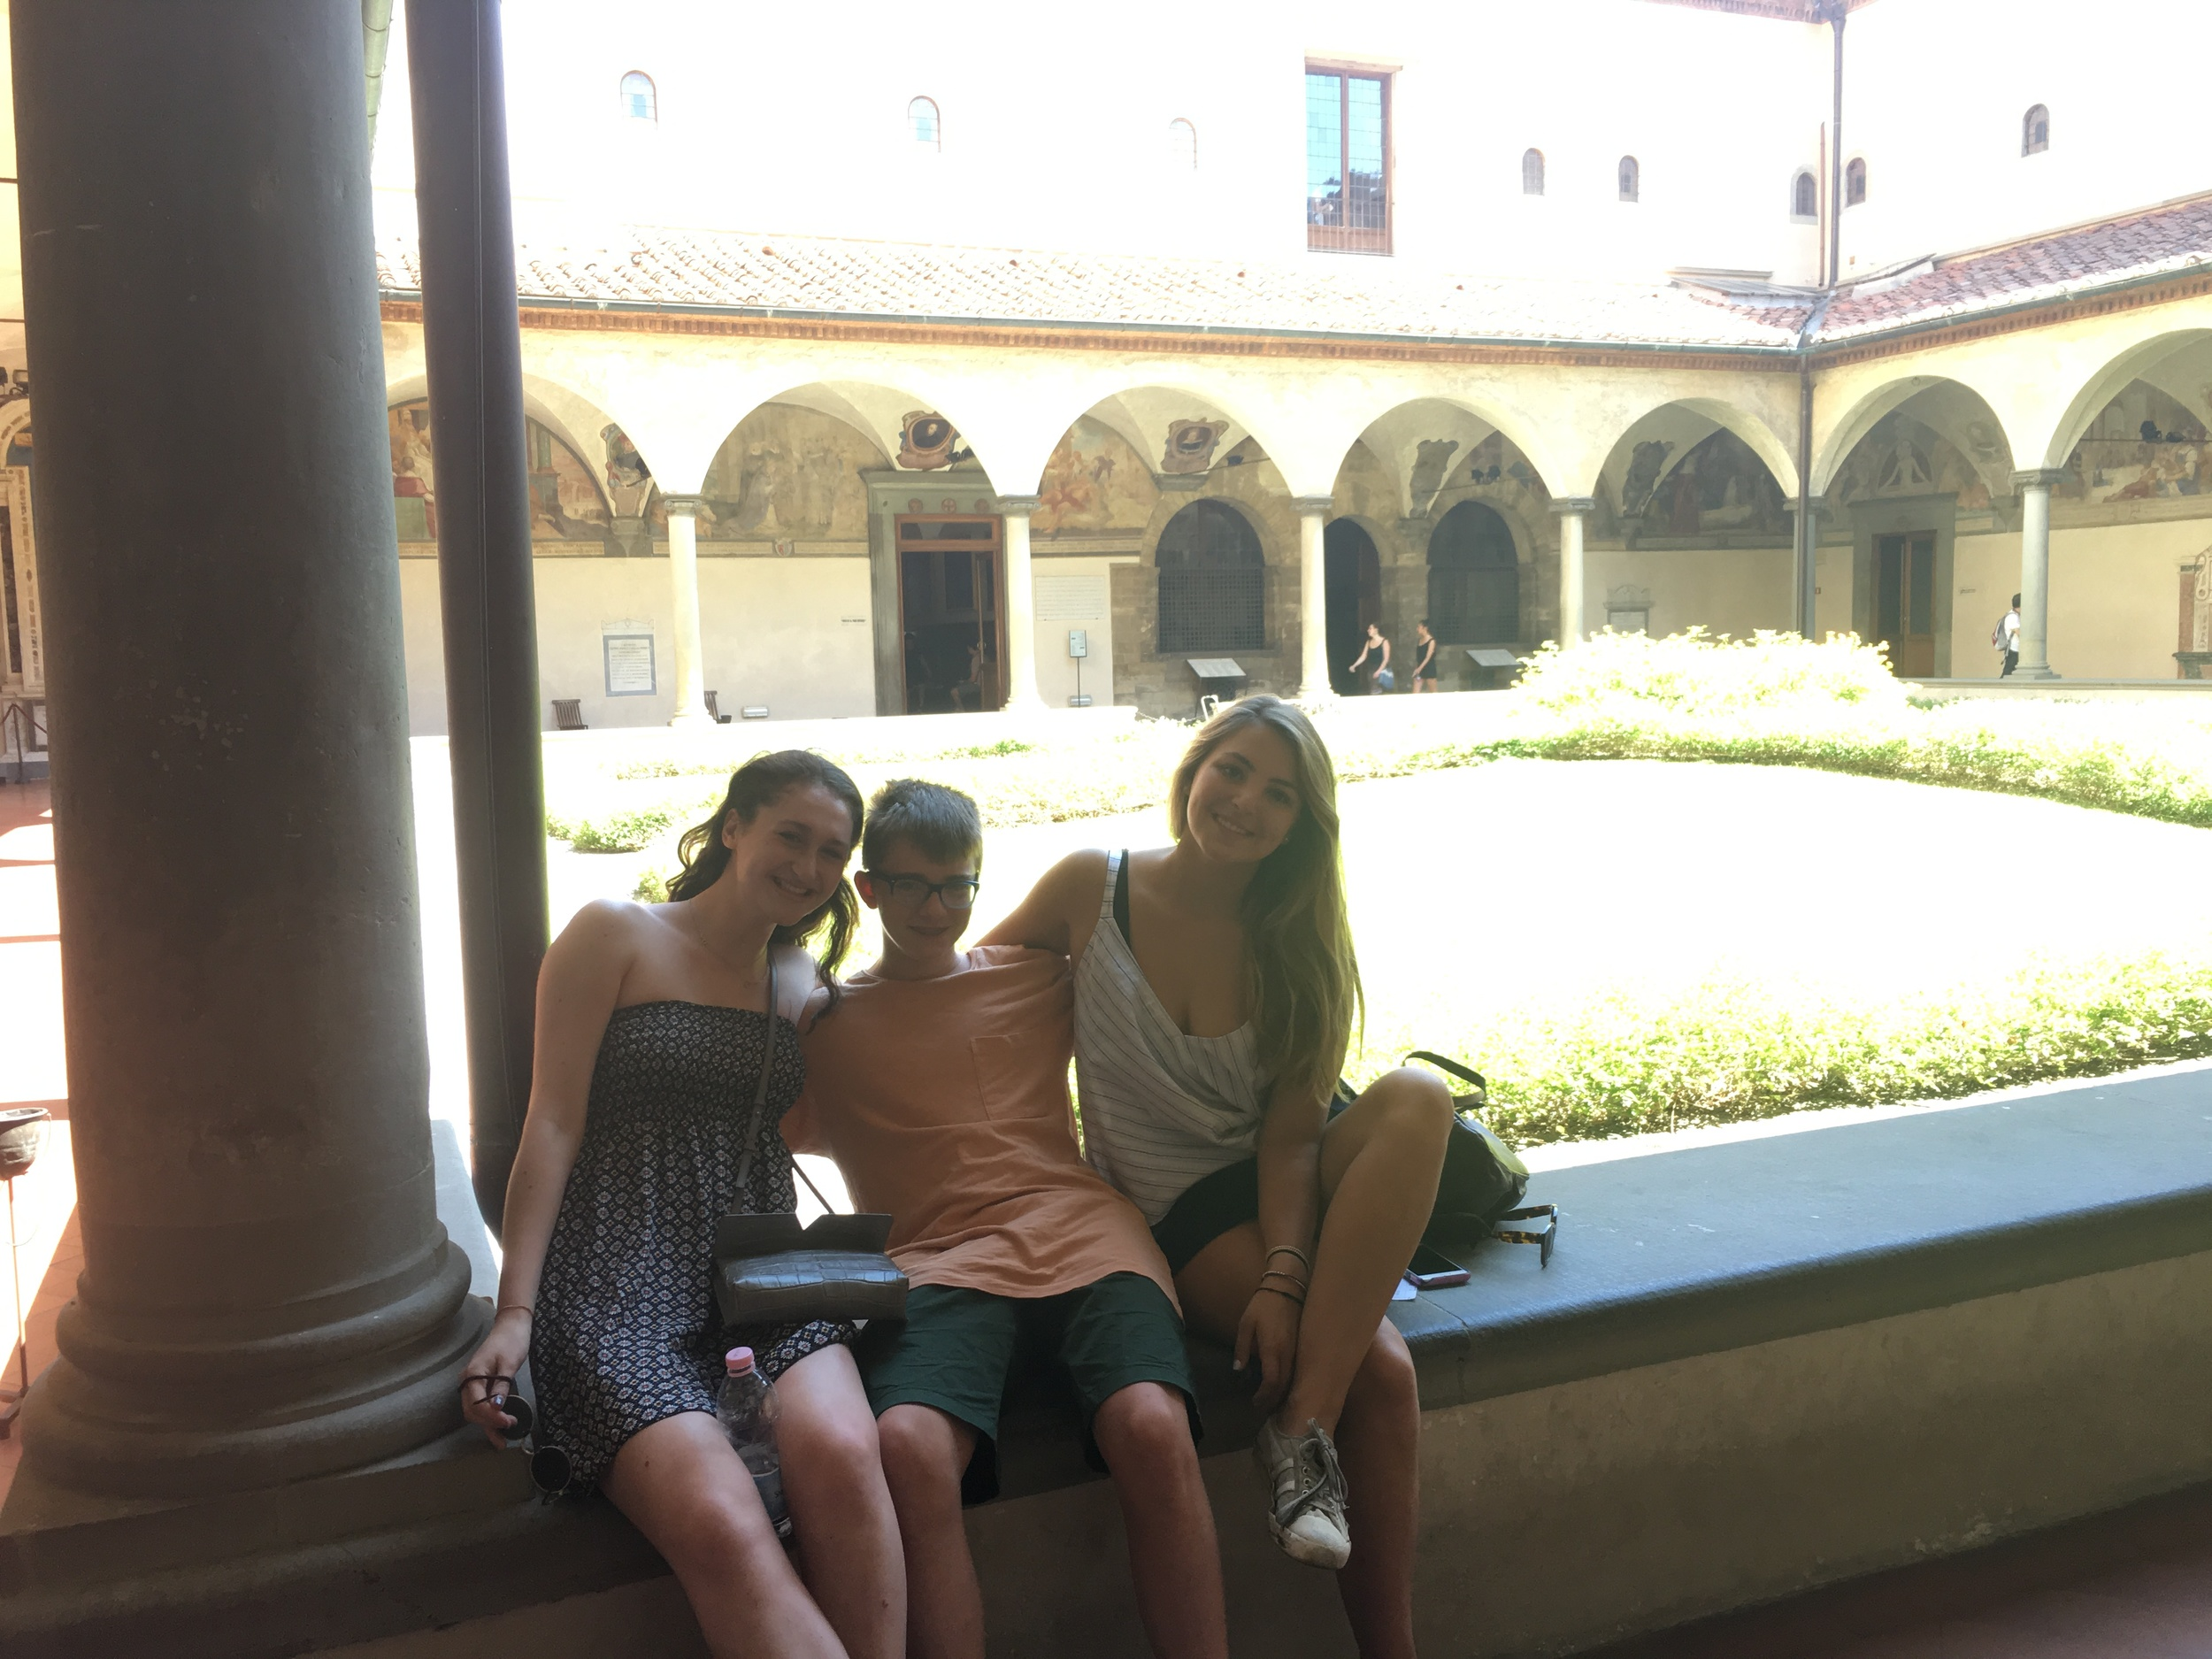 Margot, Henry and Emma in the cloister of San Marco